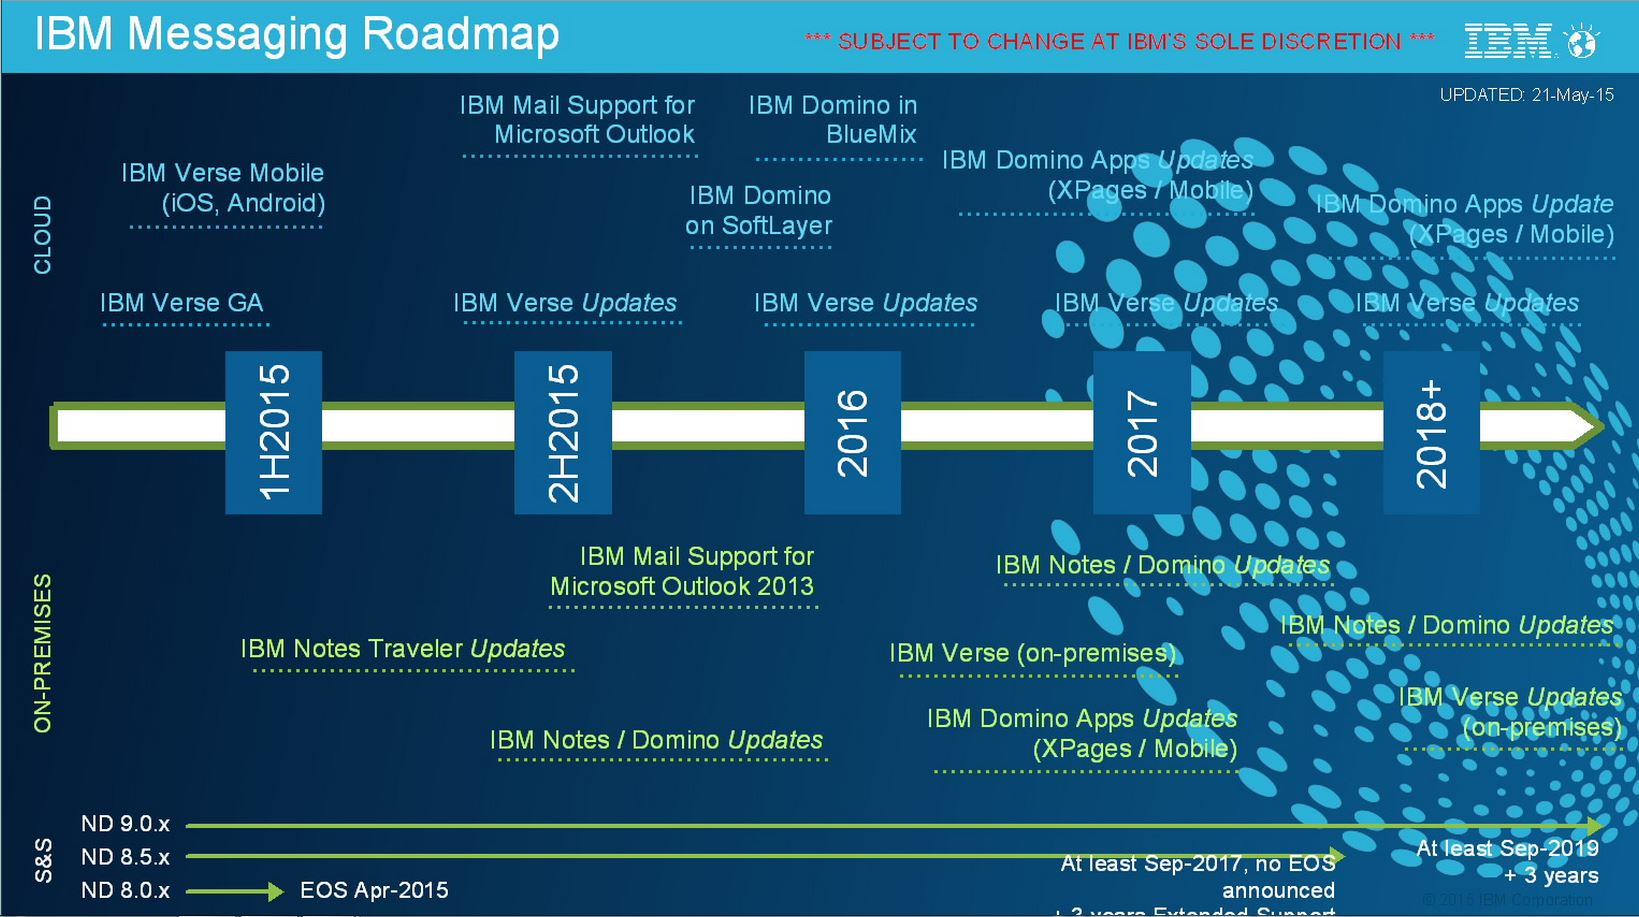 Update On Ibm Verse And The Ibm Messaging Roadmap